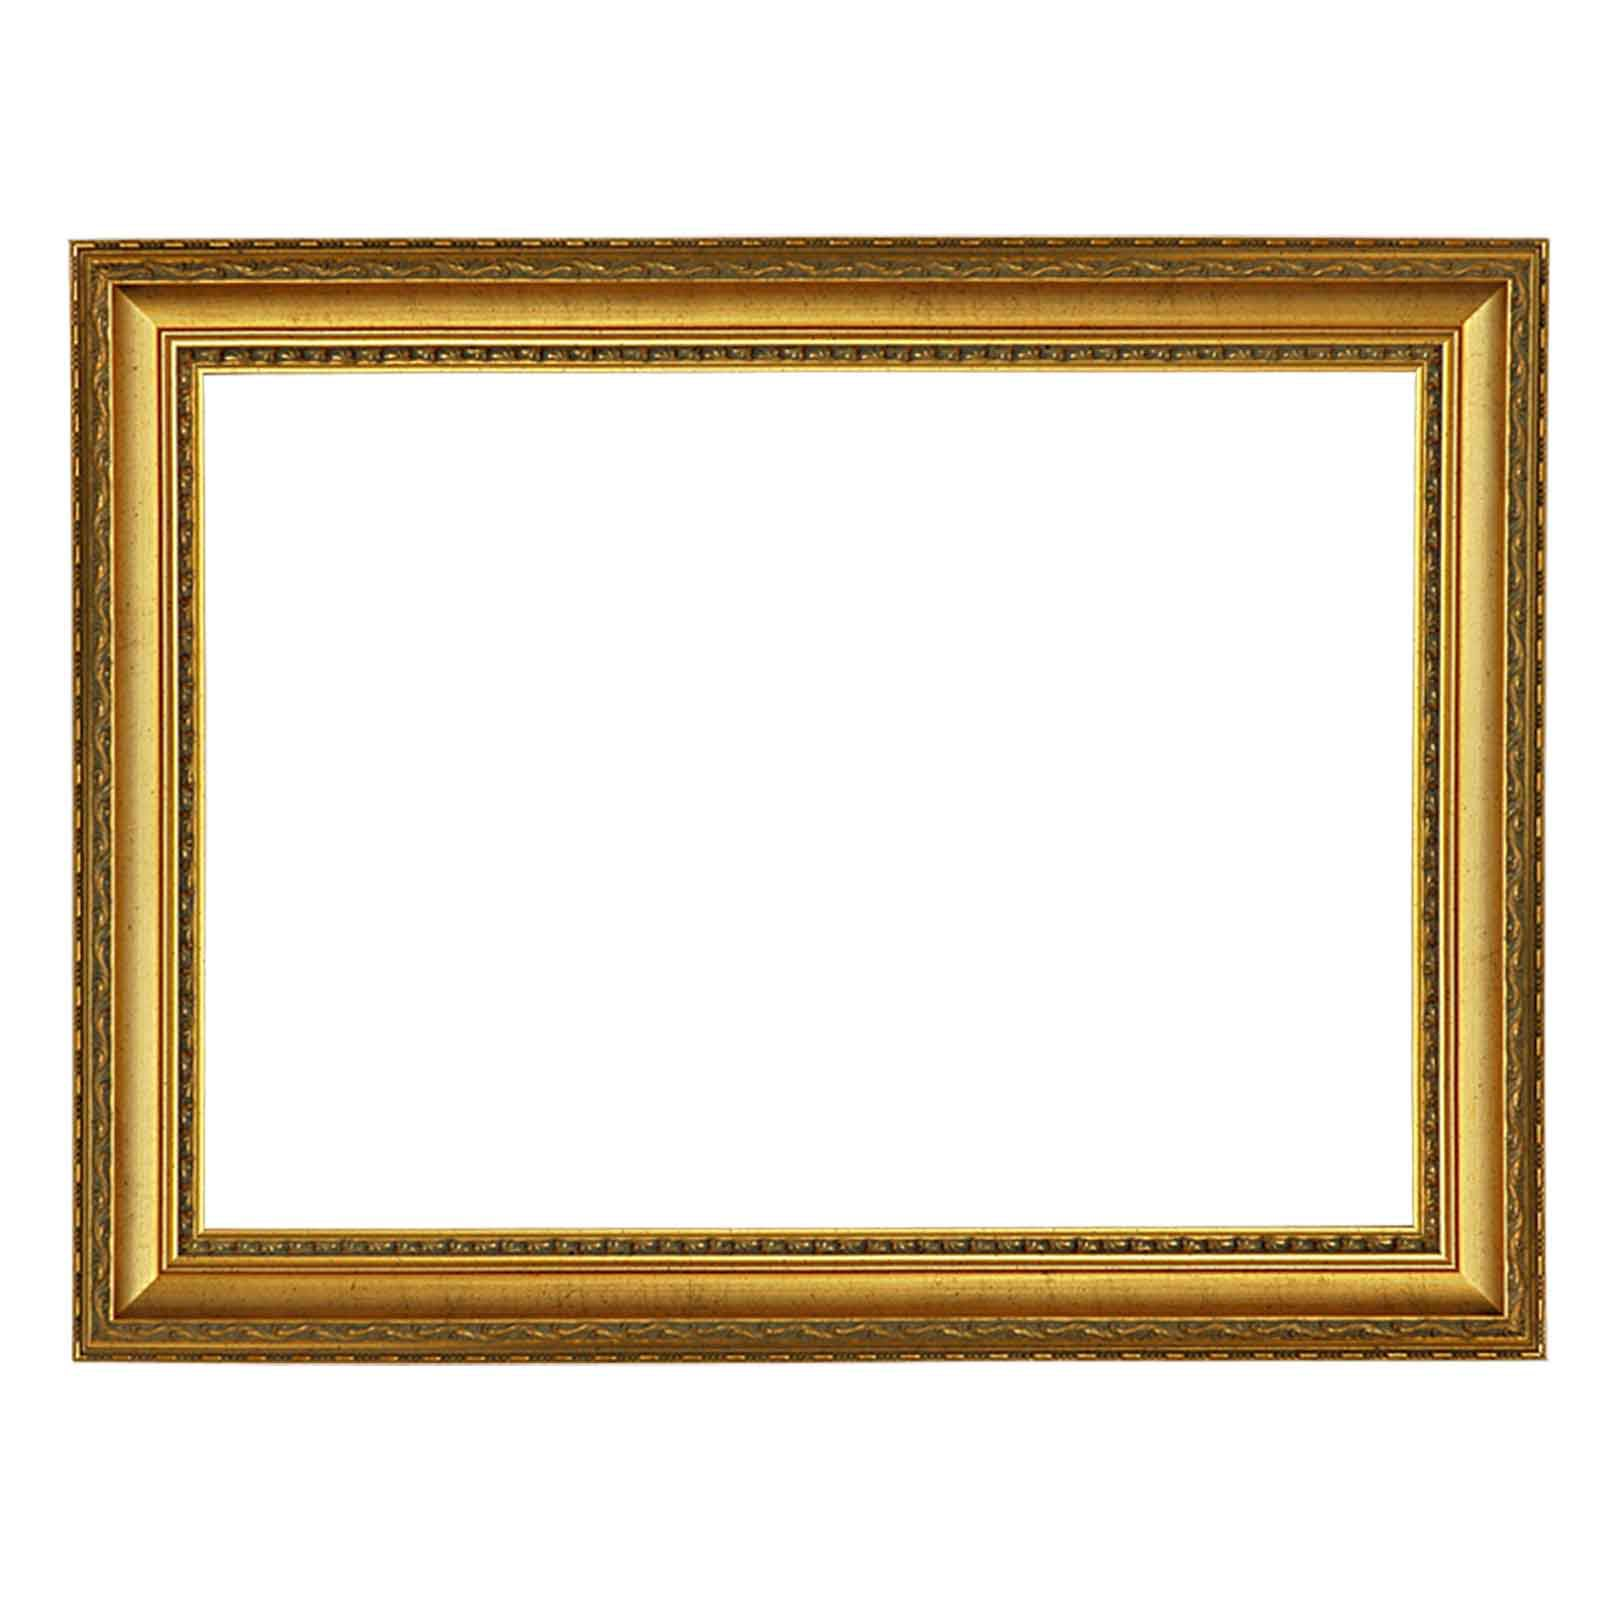 Baroque Frame 911 Oro Gold Finely Decorated Golden